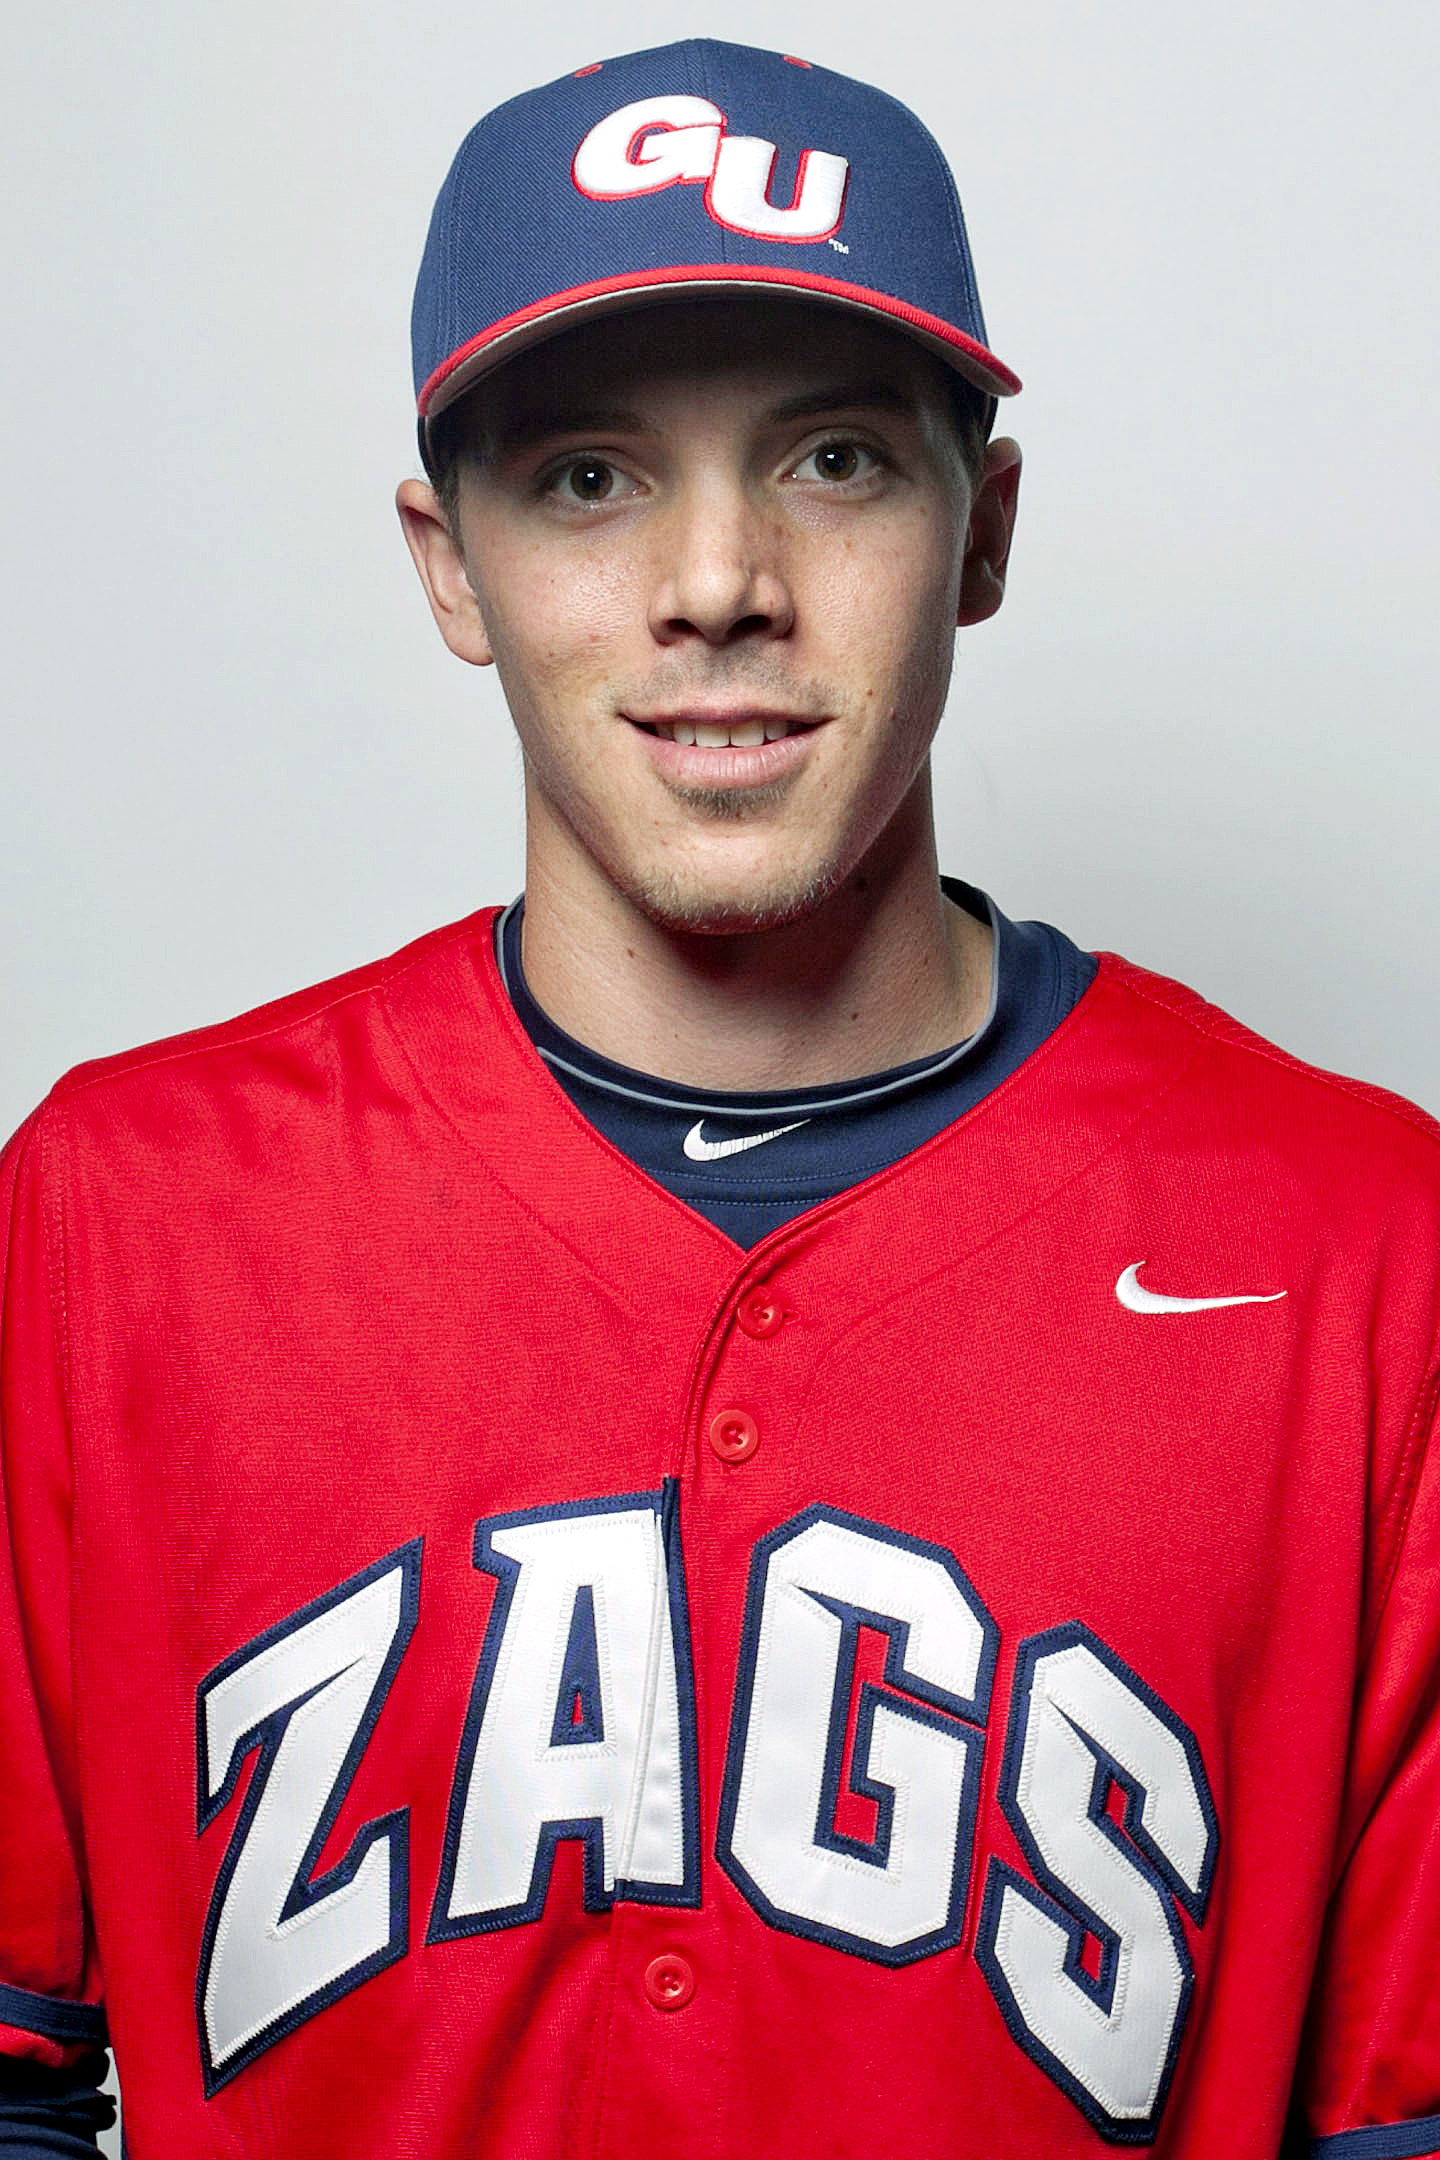 Cory Lebrun, a redshirt senior outfielder from gonzaga will be an assistant coach for the applesox in 2015.